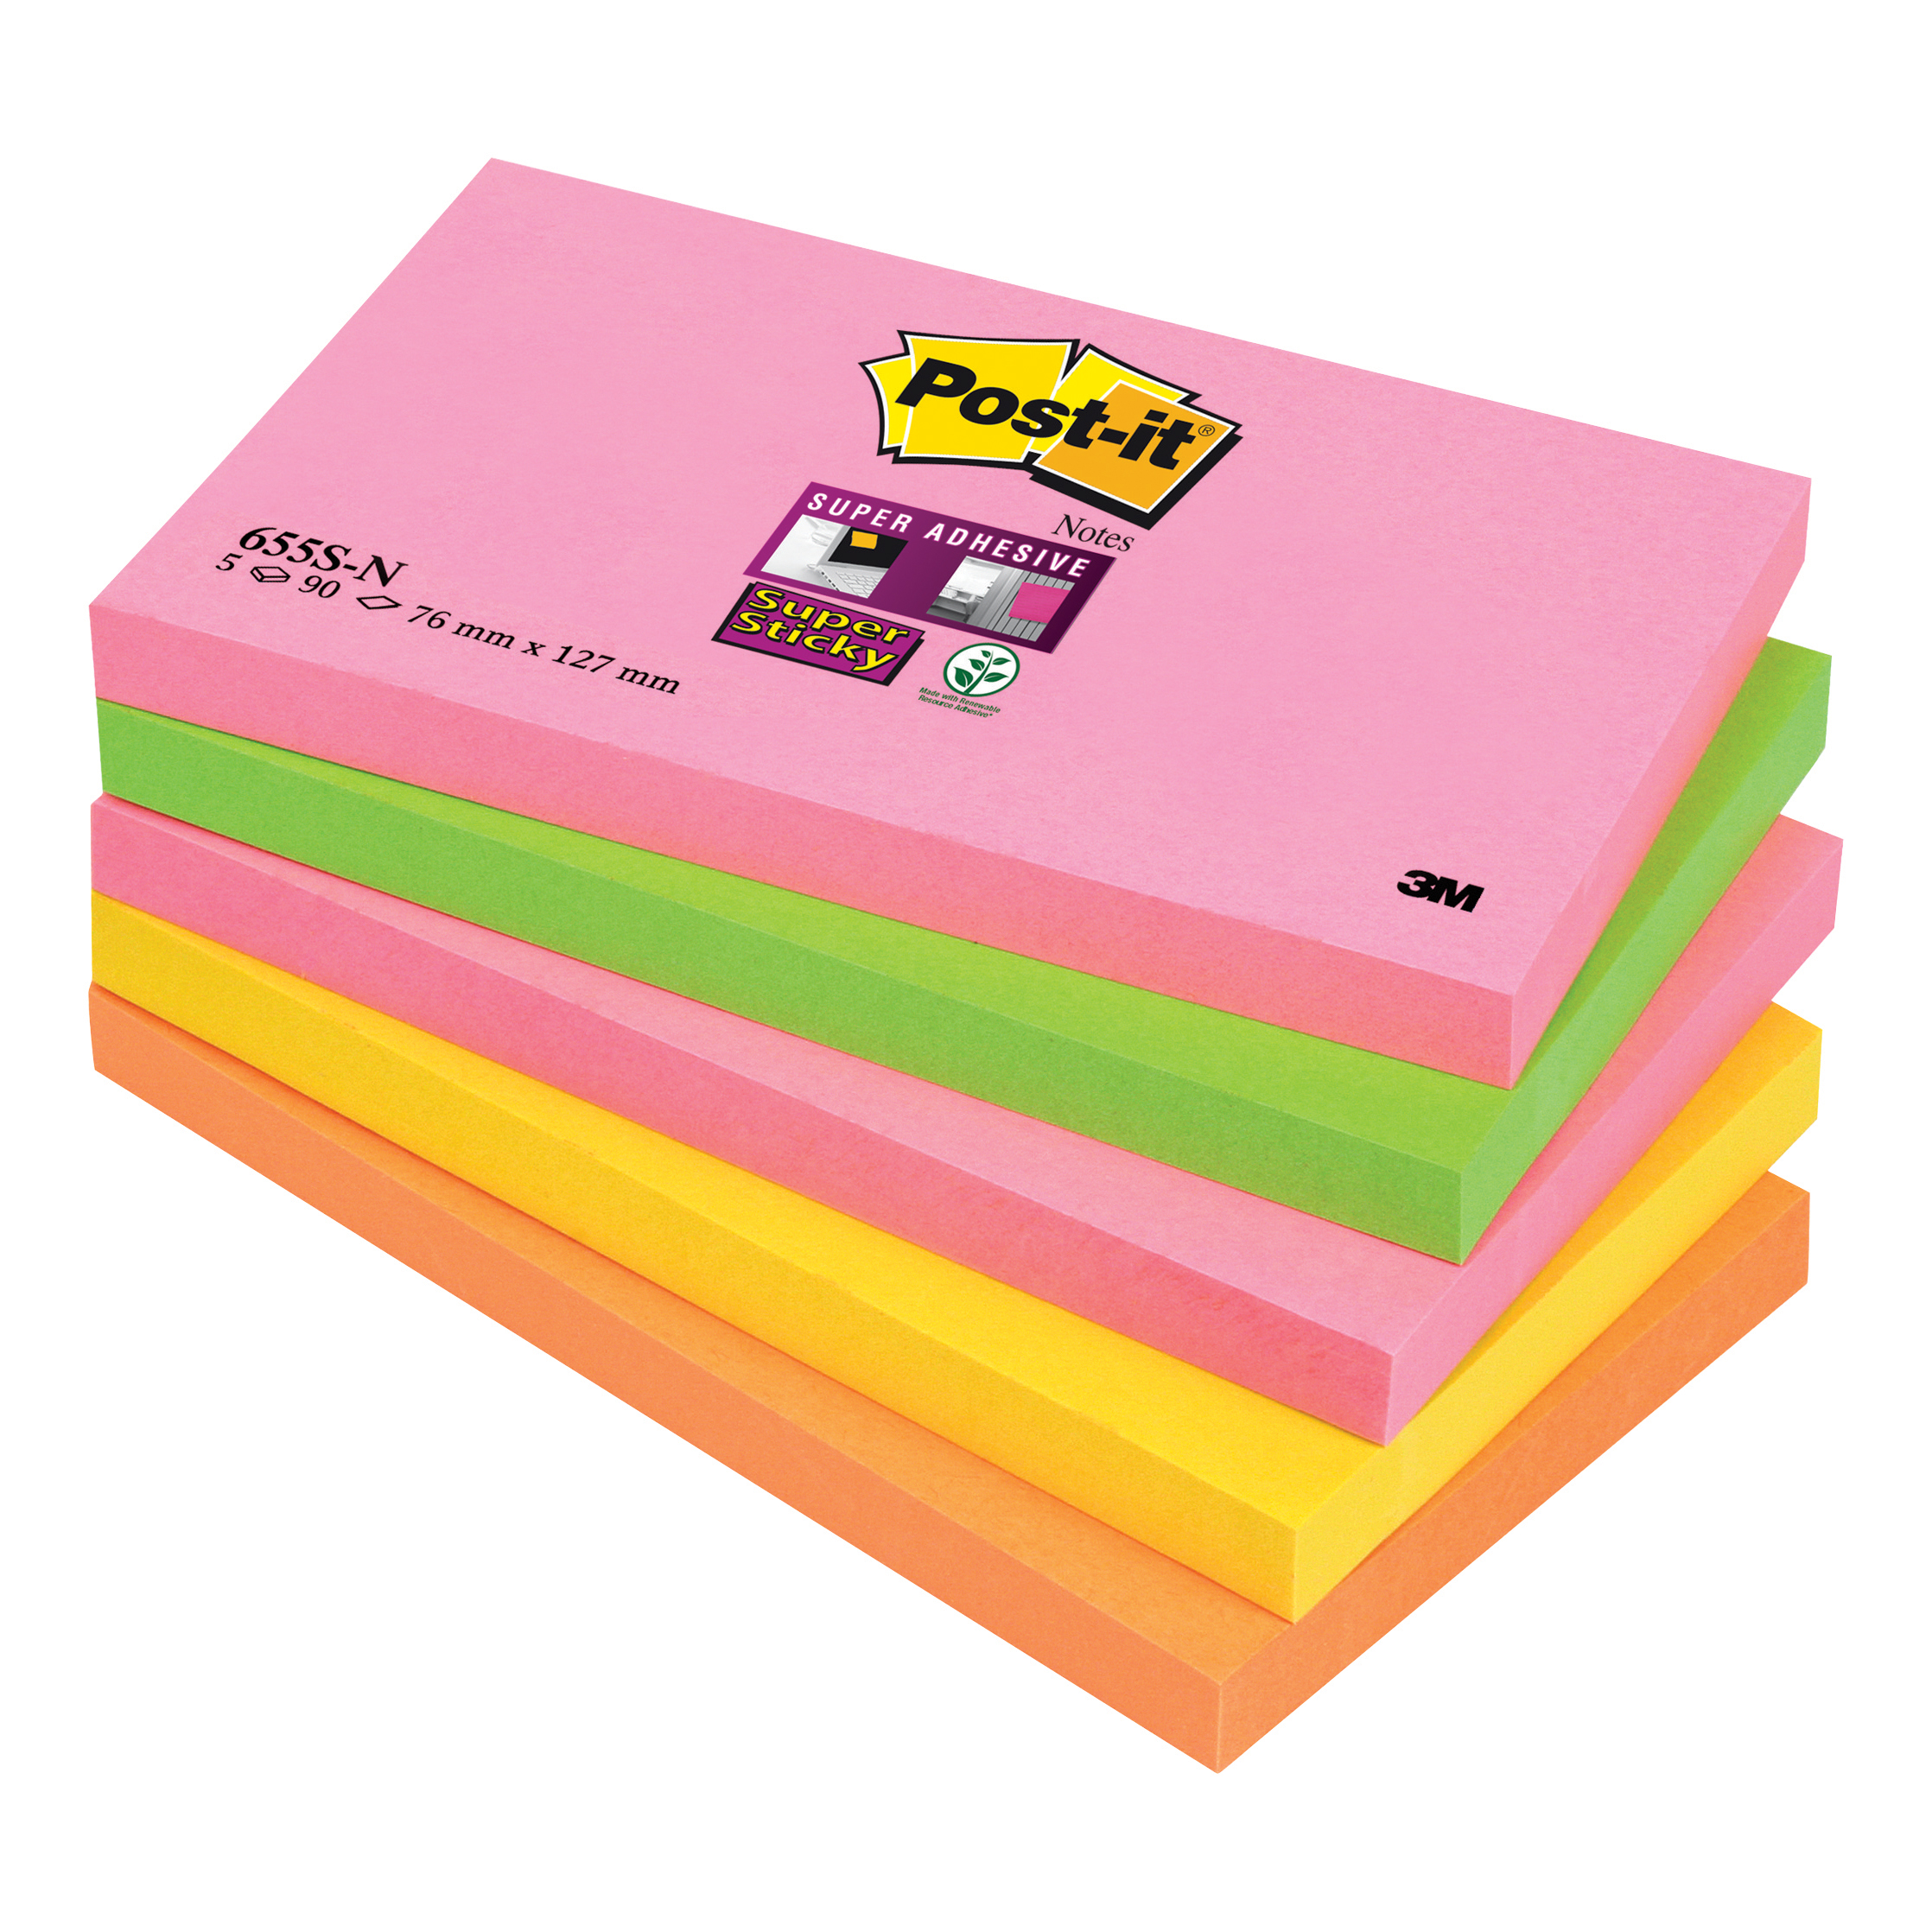 Image for Post-it Super Sticky Notes 76x127mm Capetown Rainbow Ref 655SN [Pack 5]